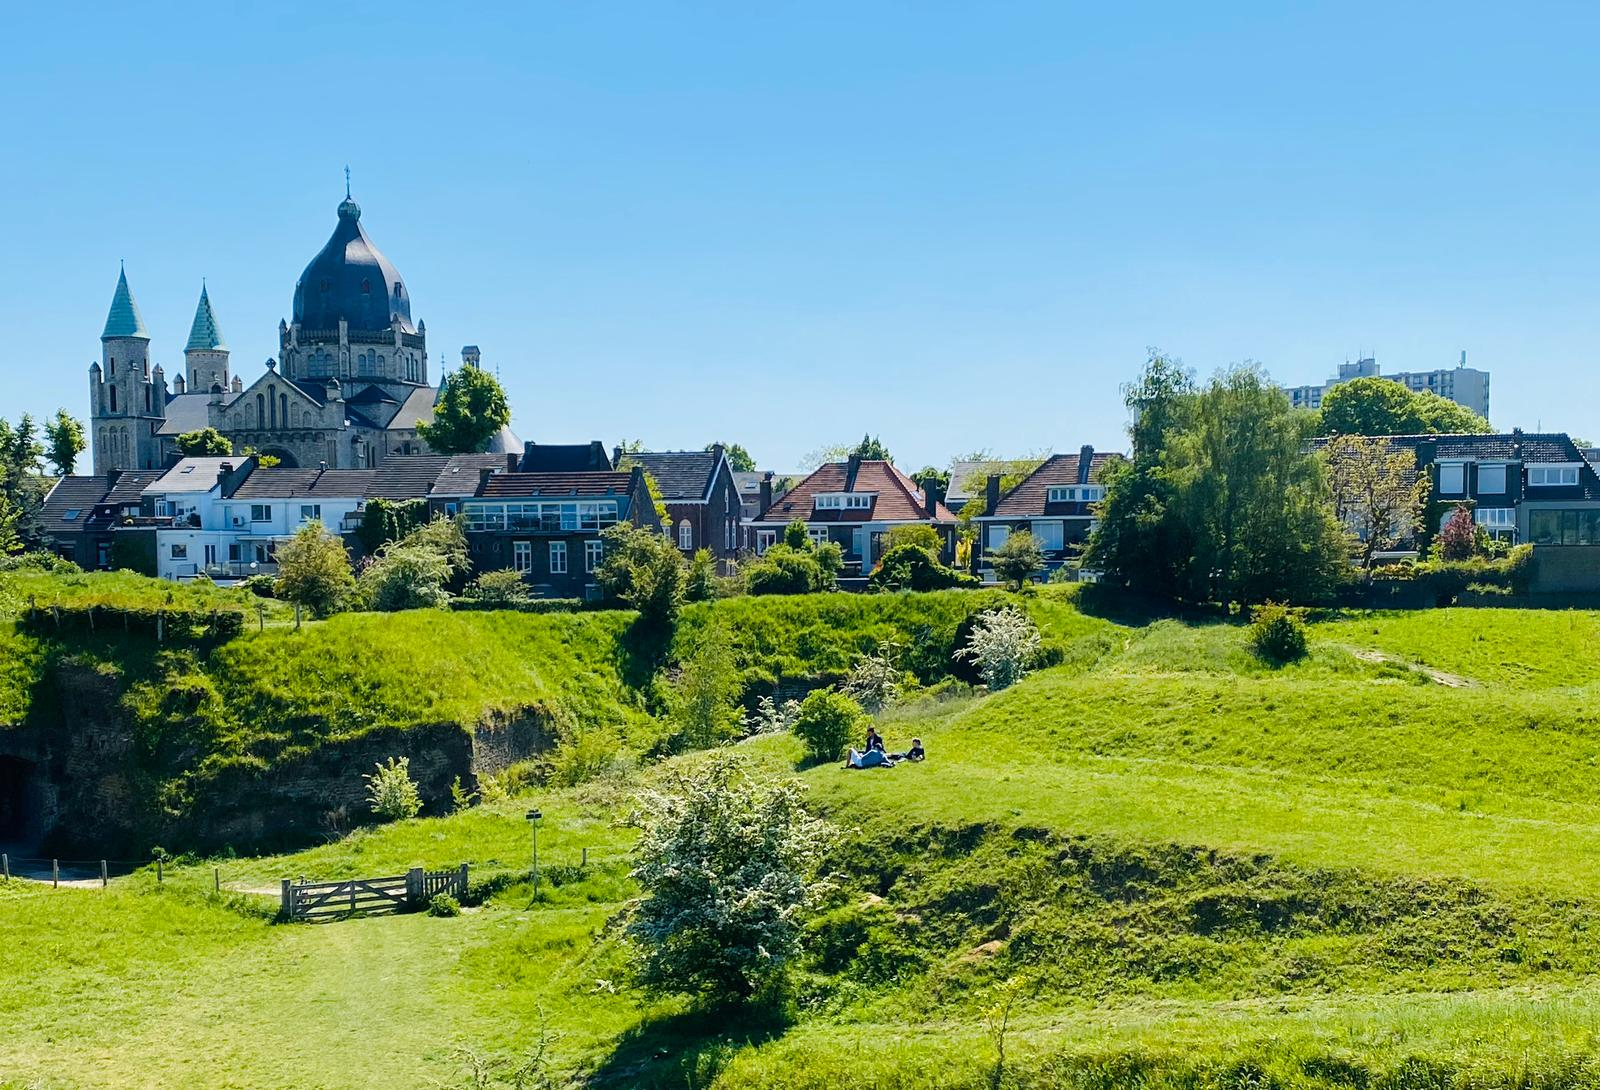 Scenic Spots in and around Maastricht